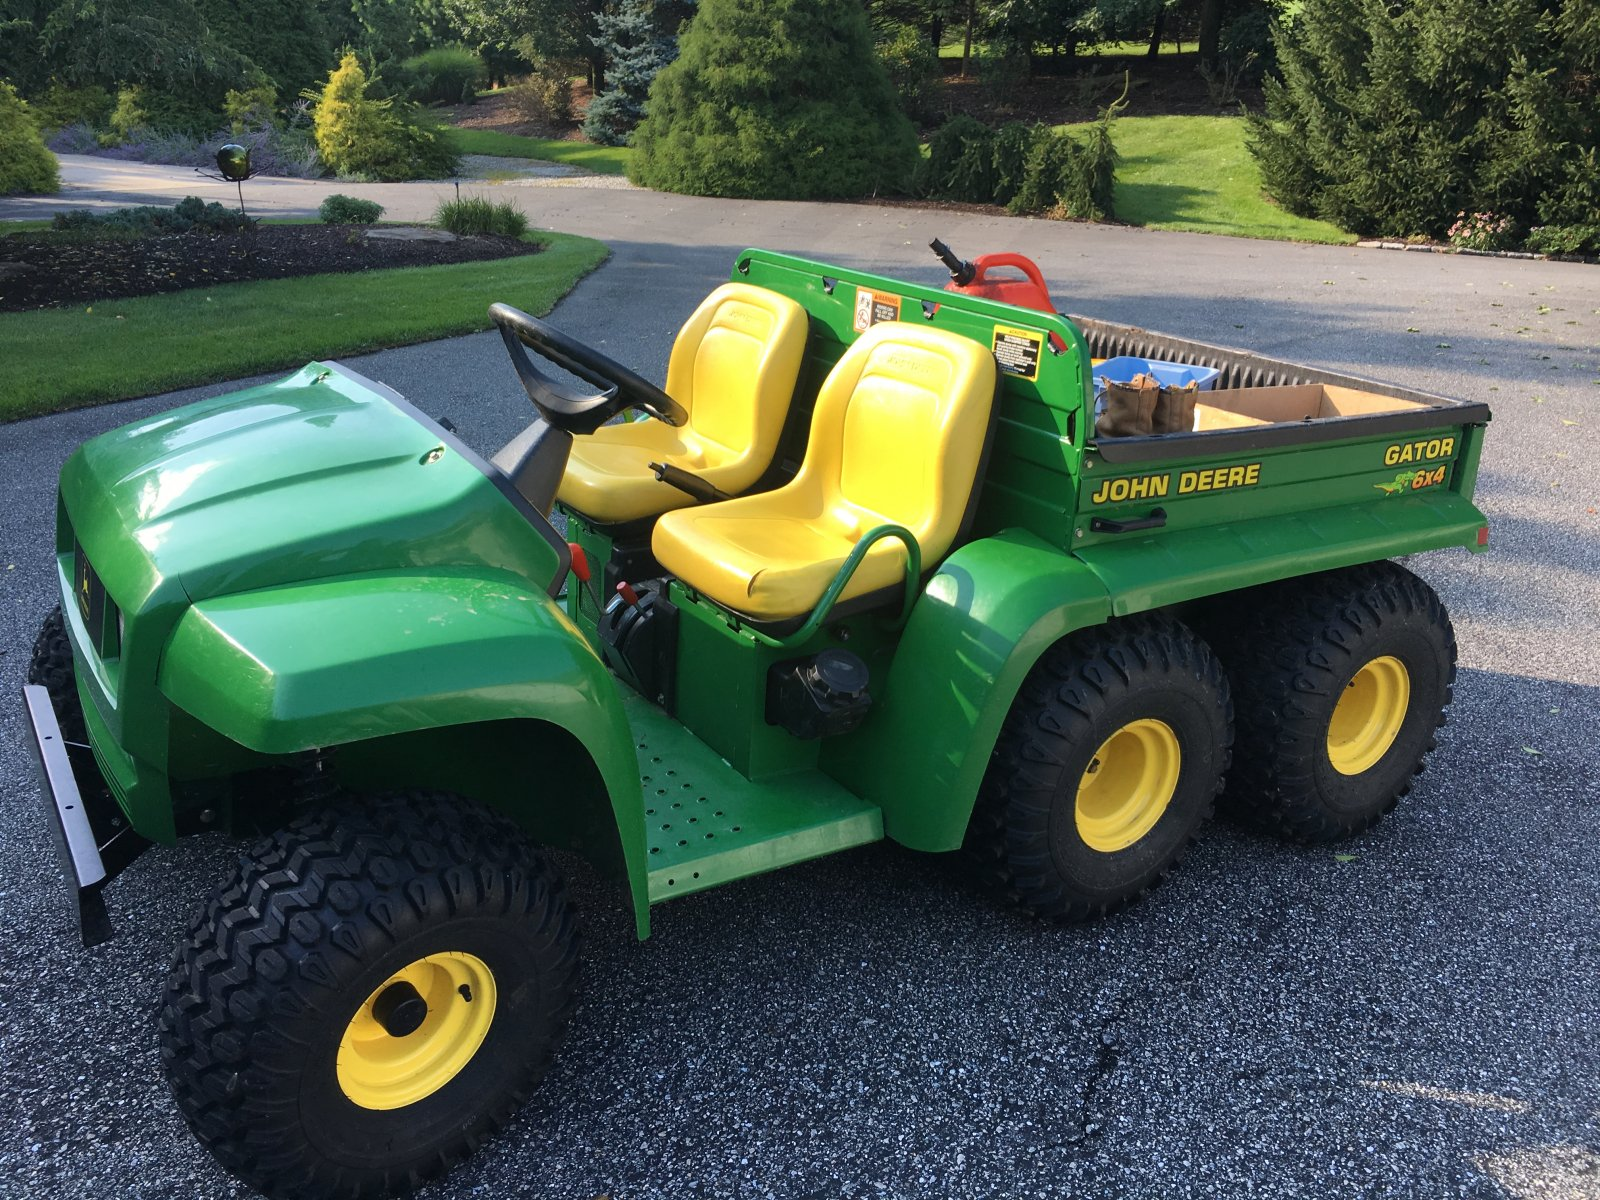 2003 john deere gator 6x4 lawnsite. Black Bedroom Furniture Sets. Home Design Ideas